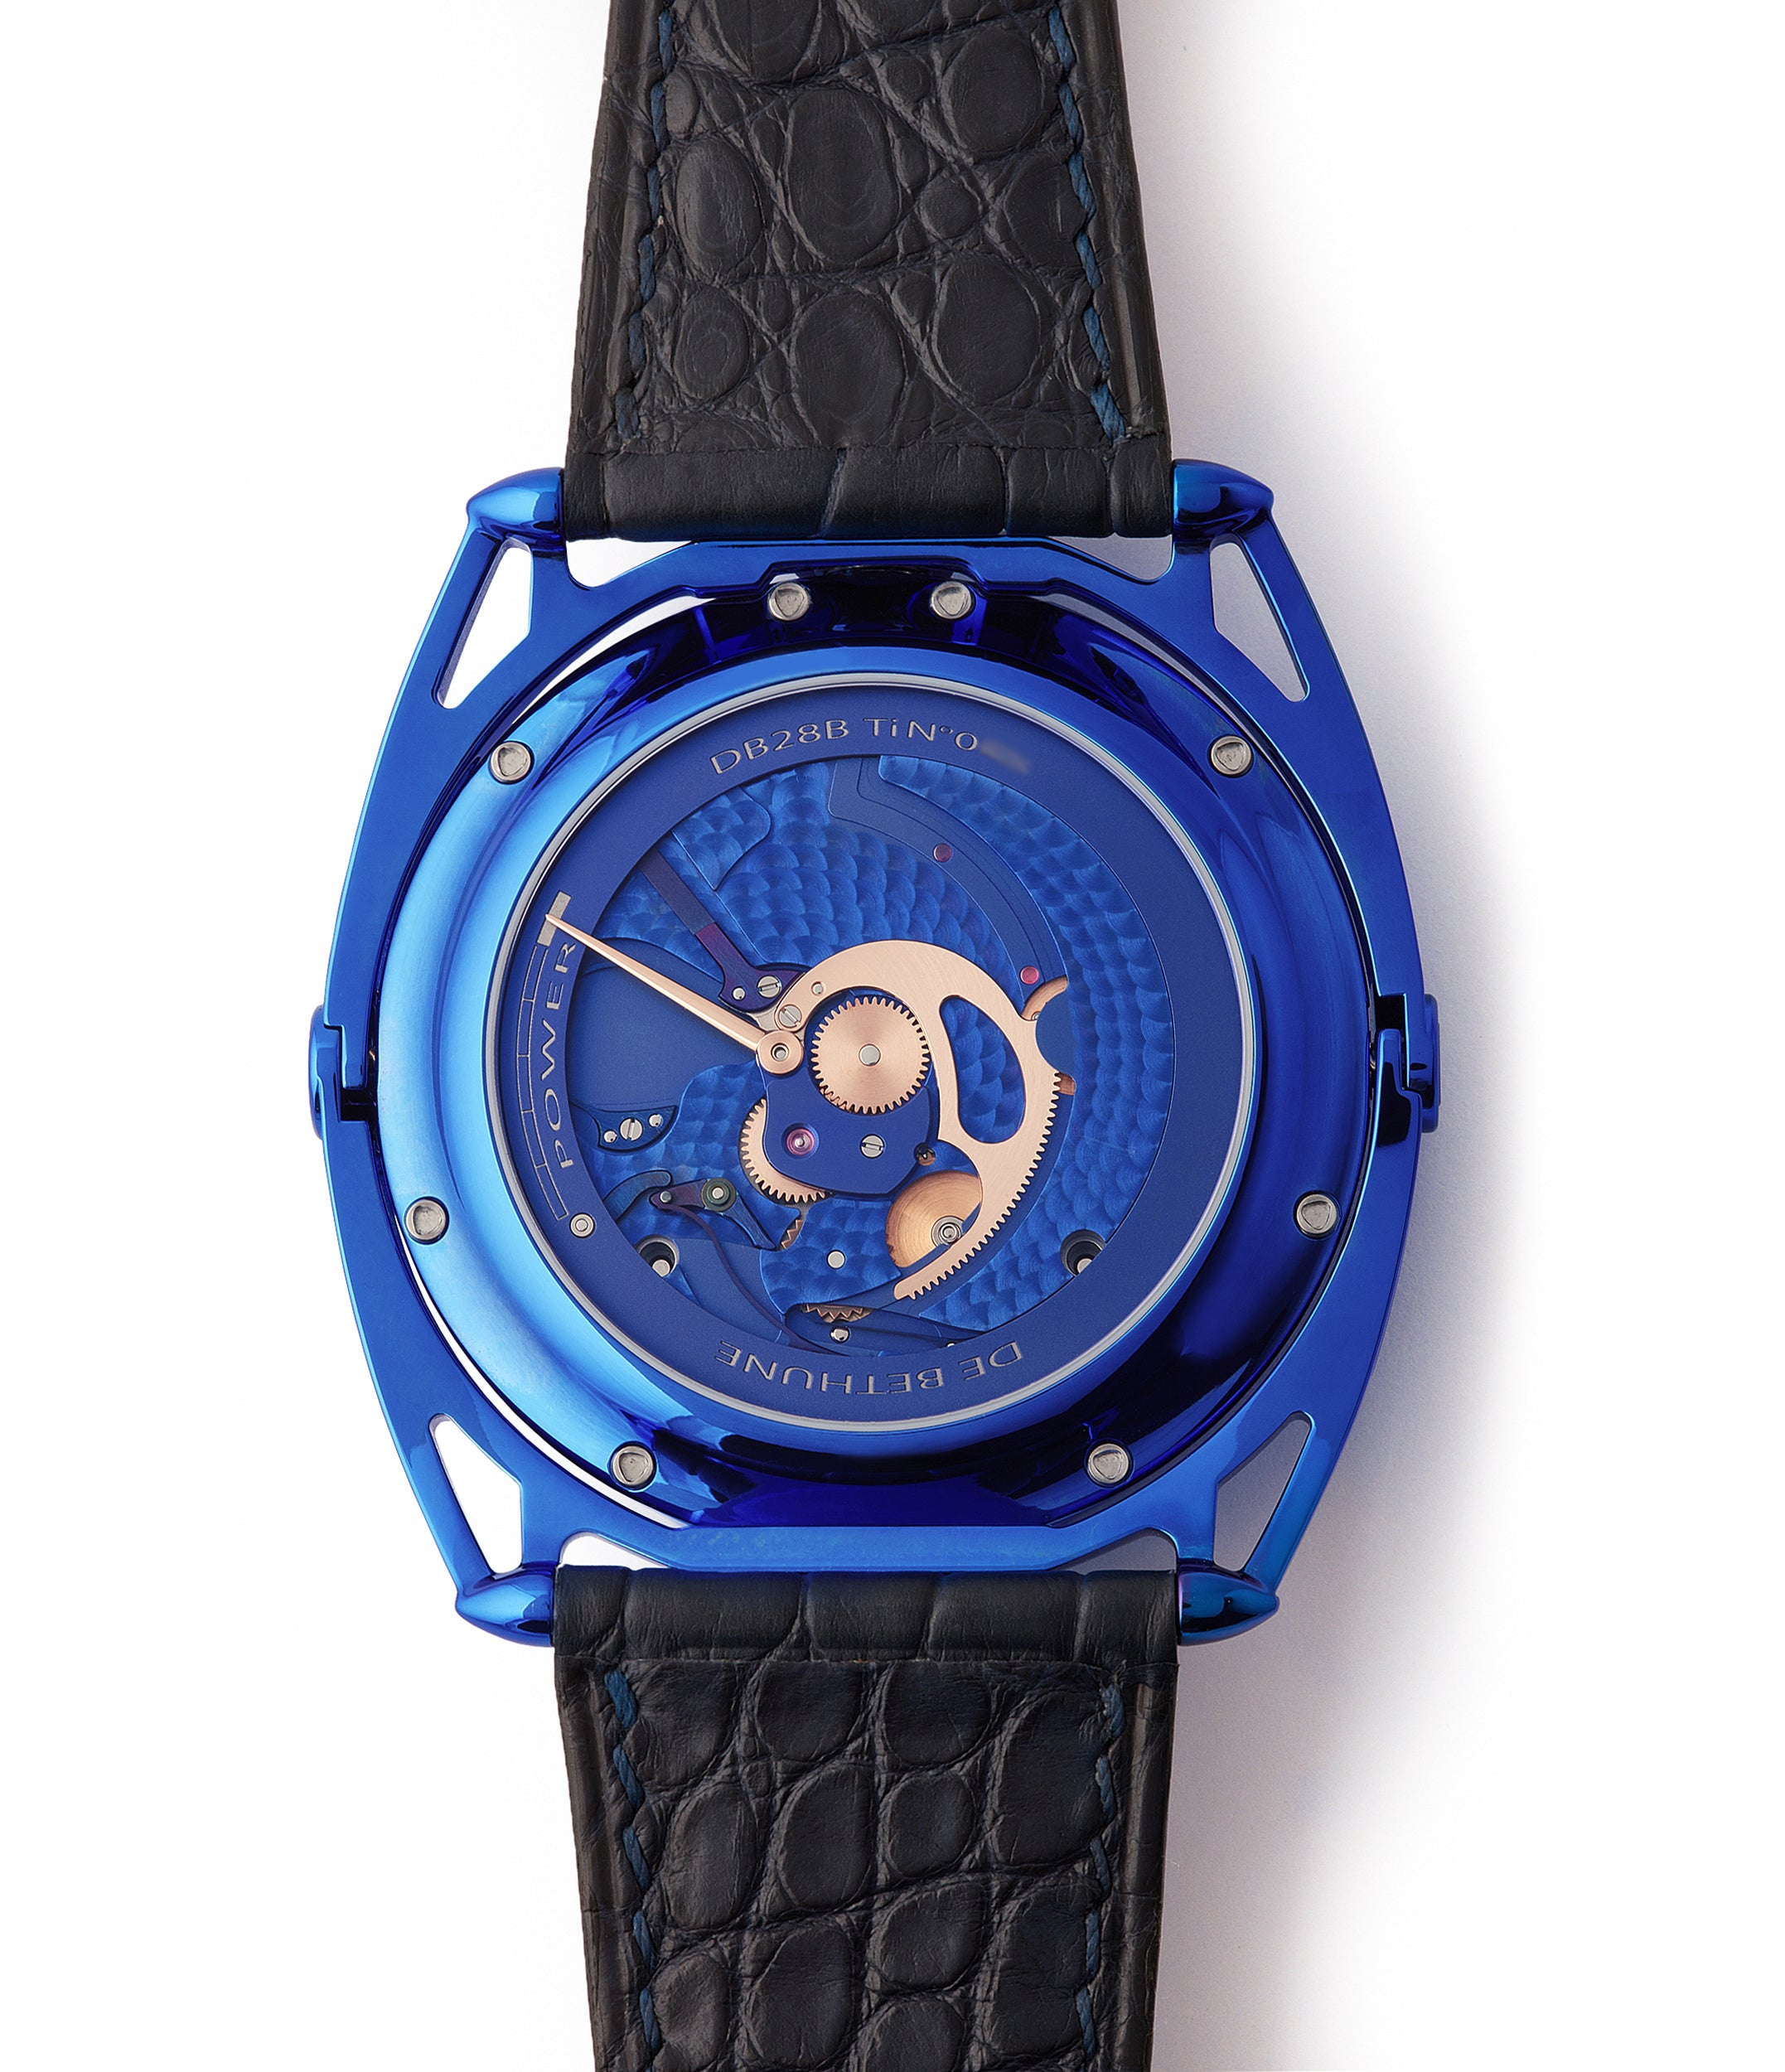 blue movement watch De Bethune DB28 Kind of Blue titanium rare limited edition independent watchmaker for sale at A Collected Man London UK specilaist of rare watches